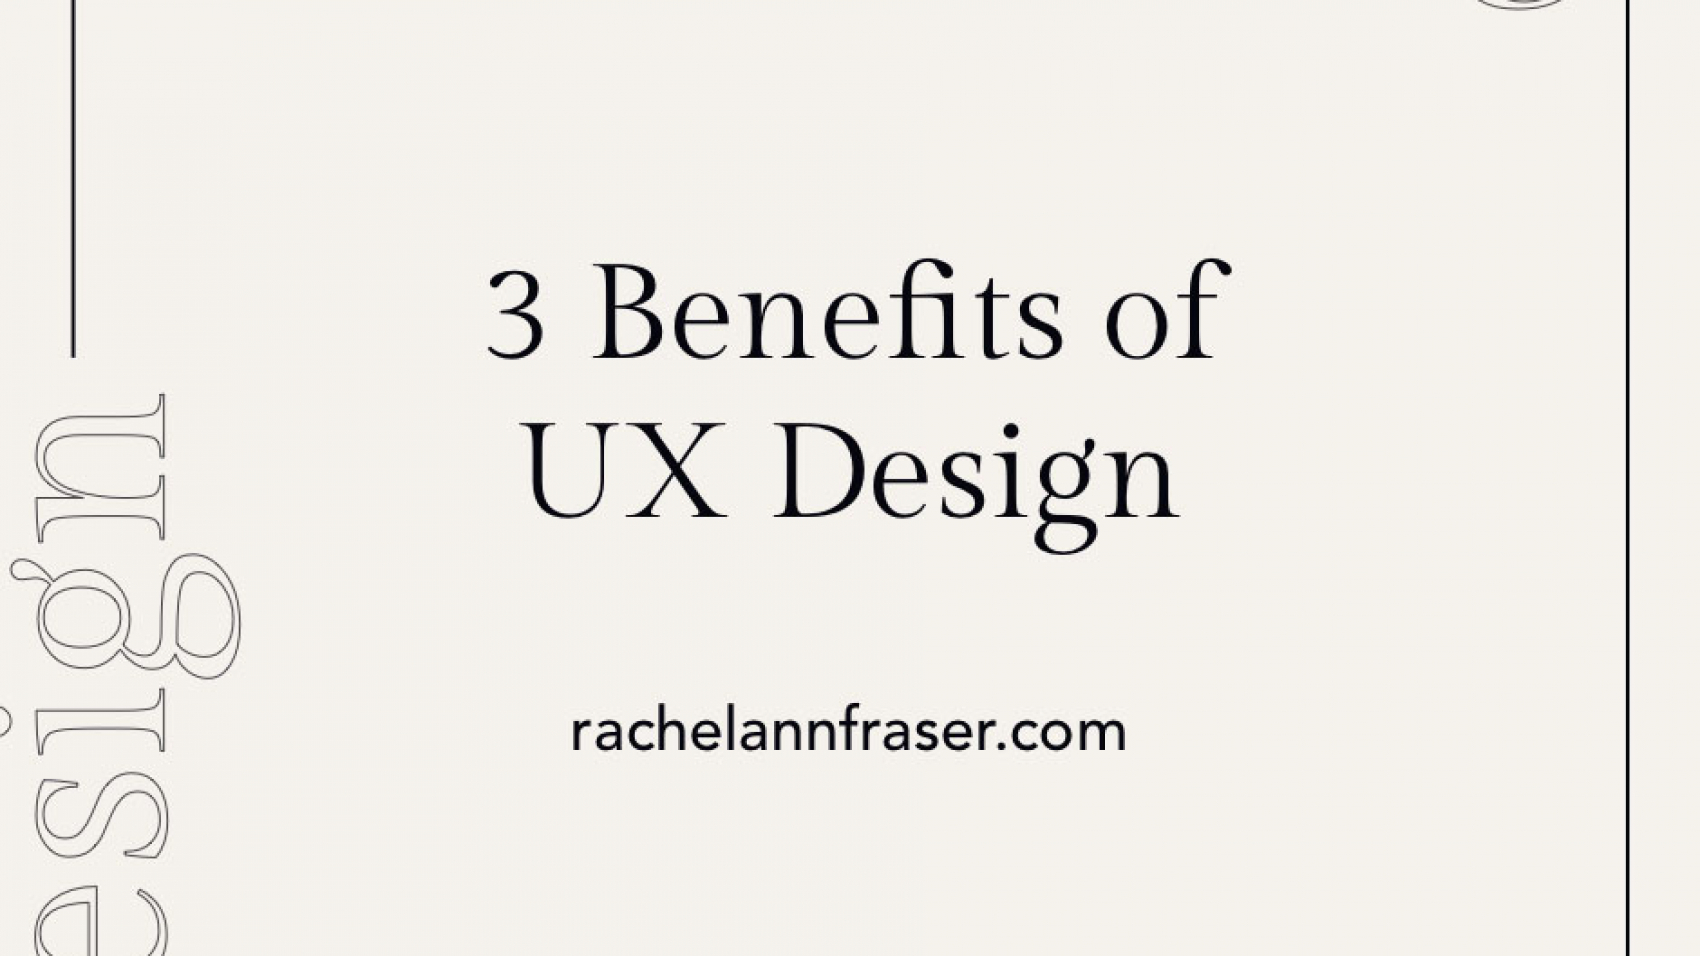 UX Design Benefits